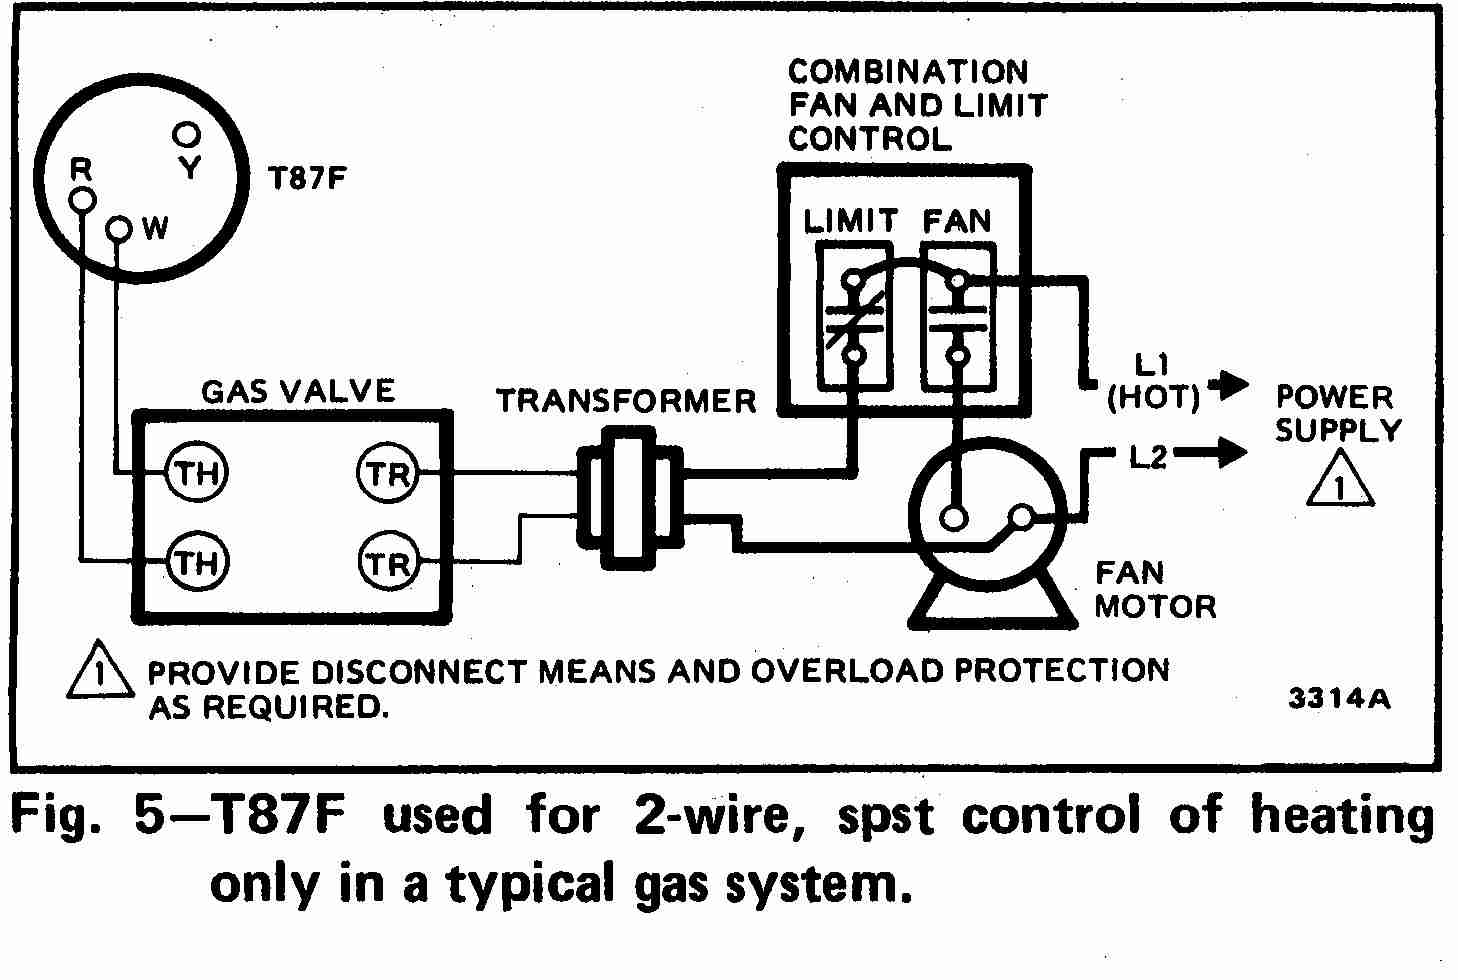 TT_T87F_0002_2Wg_DJF zone valve wiring installation & instructions guide to heating white rodgers 1361 102 wiring diagram at gsmportal.co